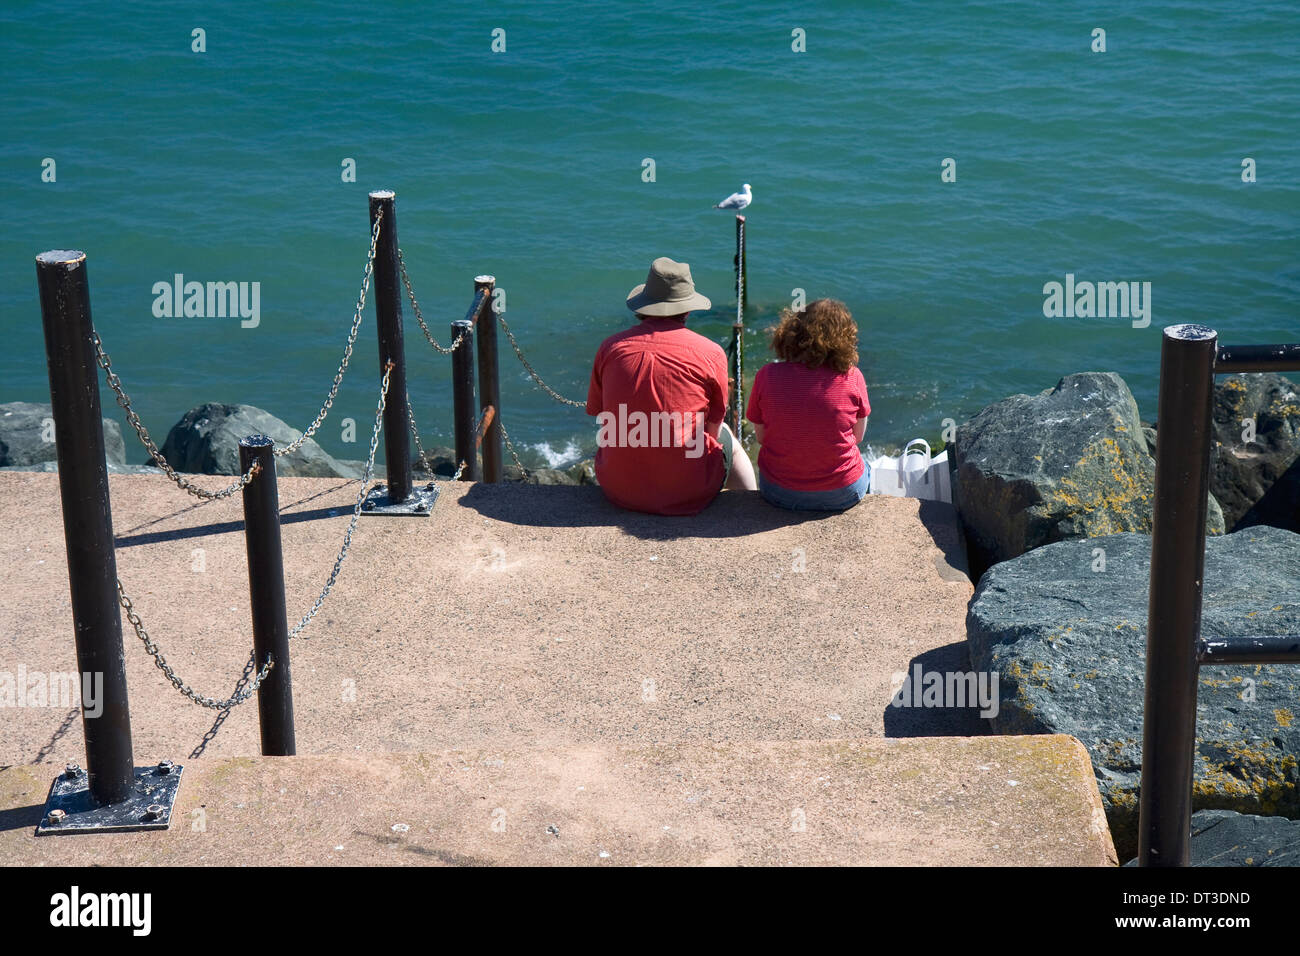 couple-in-red-shirts-sitting-beside-the-sea-at-lyme-regis-dorset-DT3DND.jpg